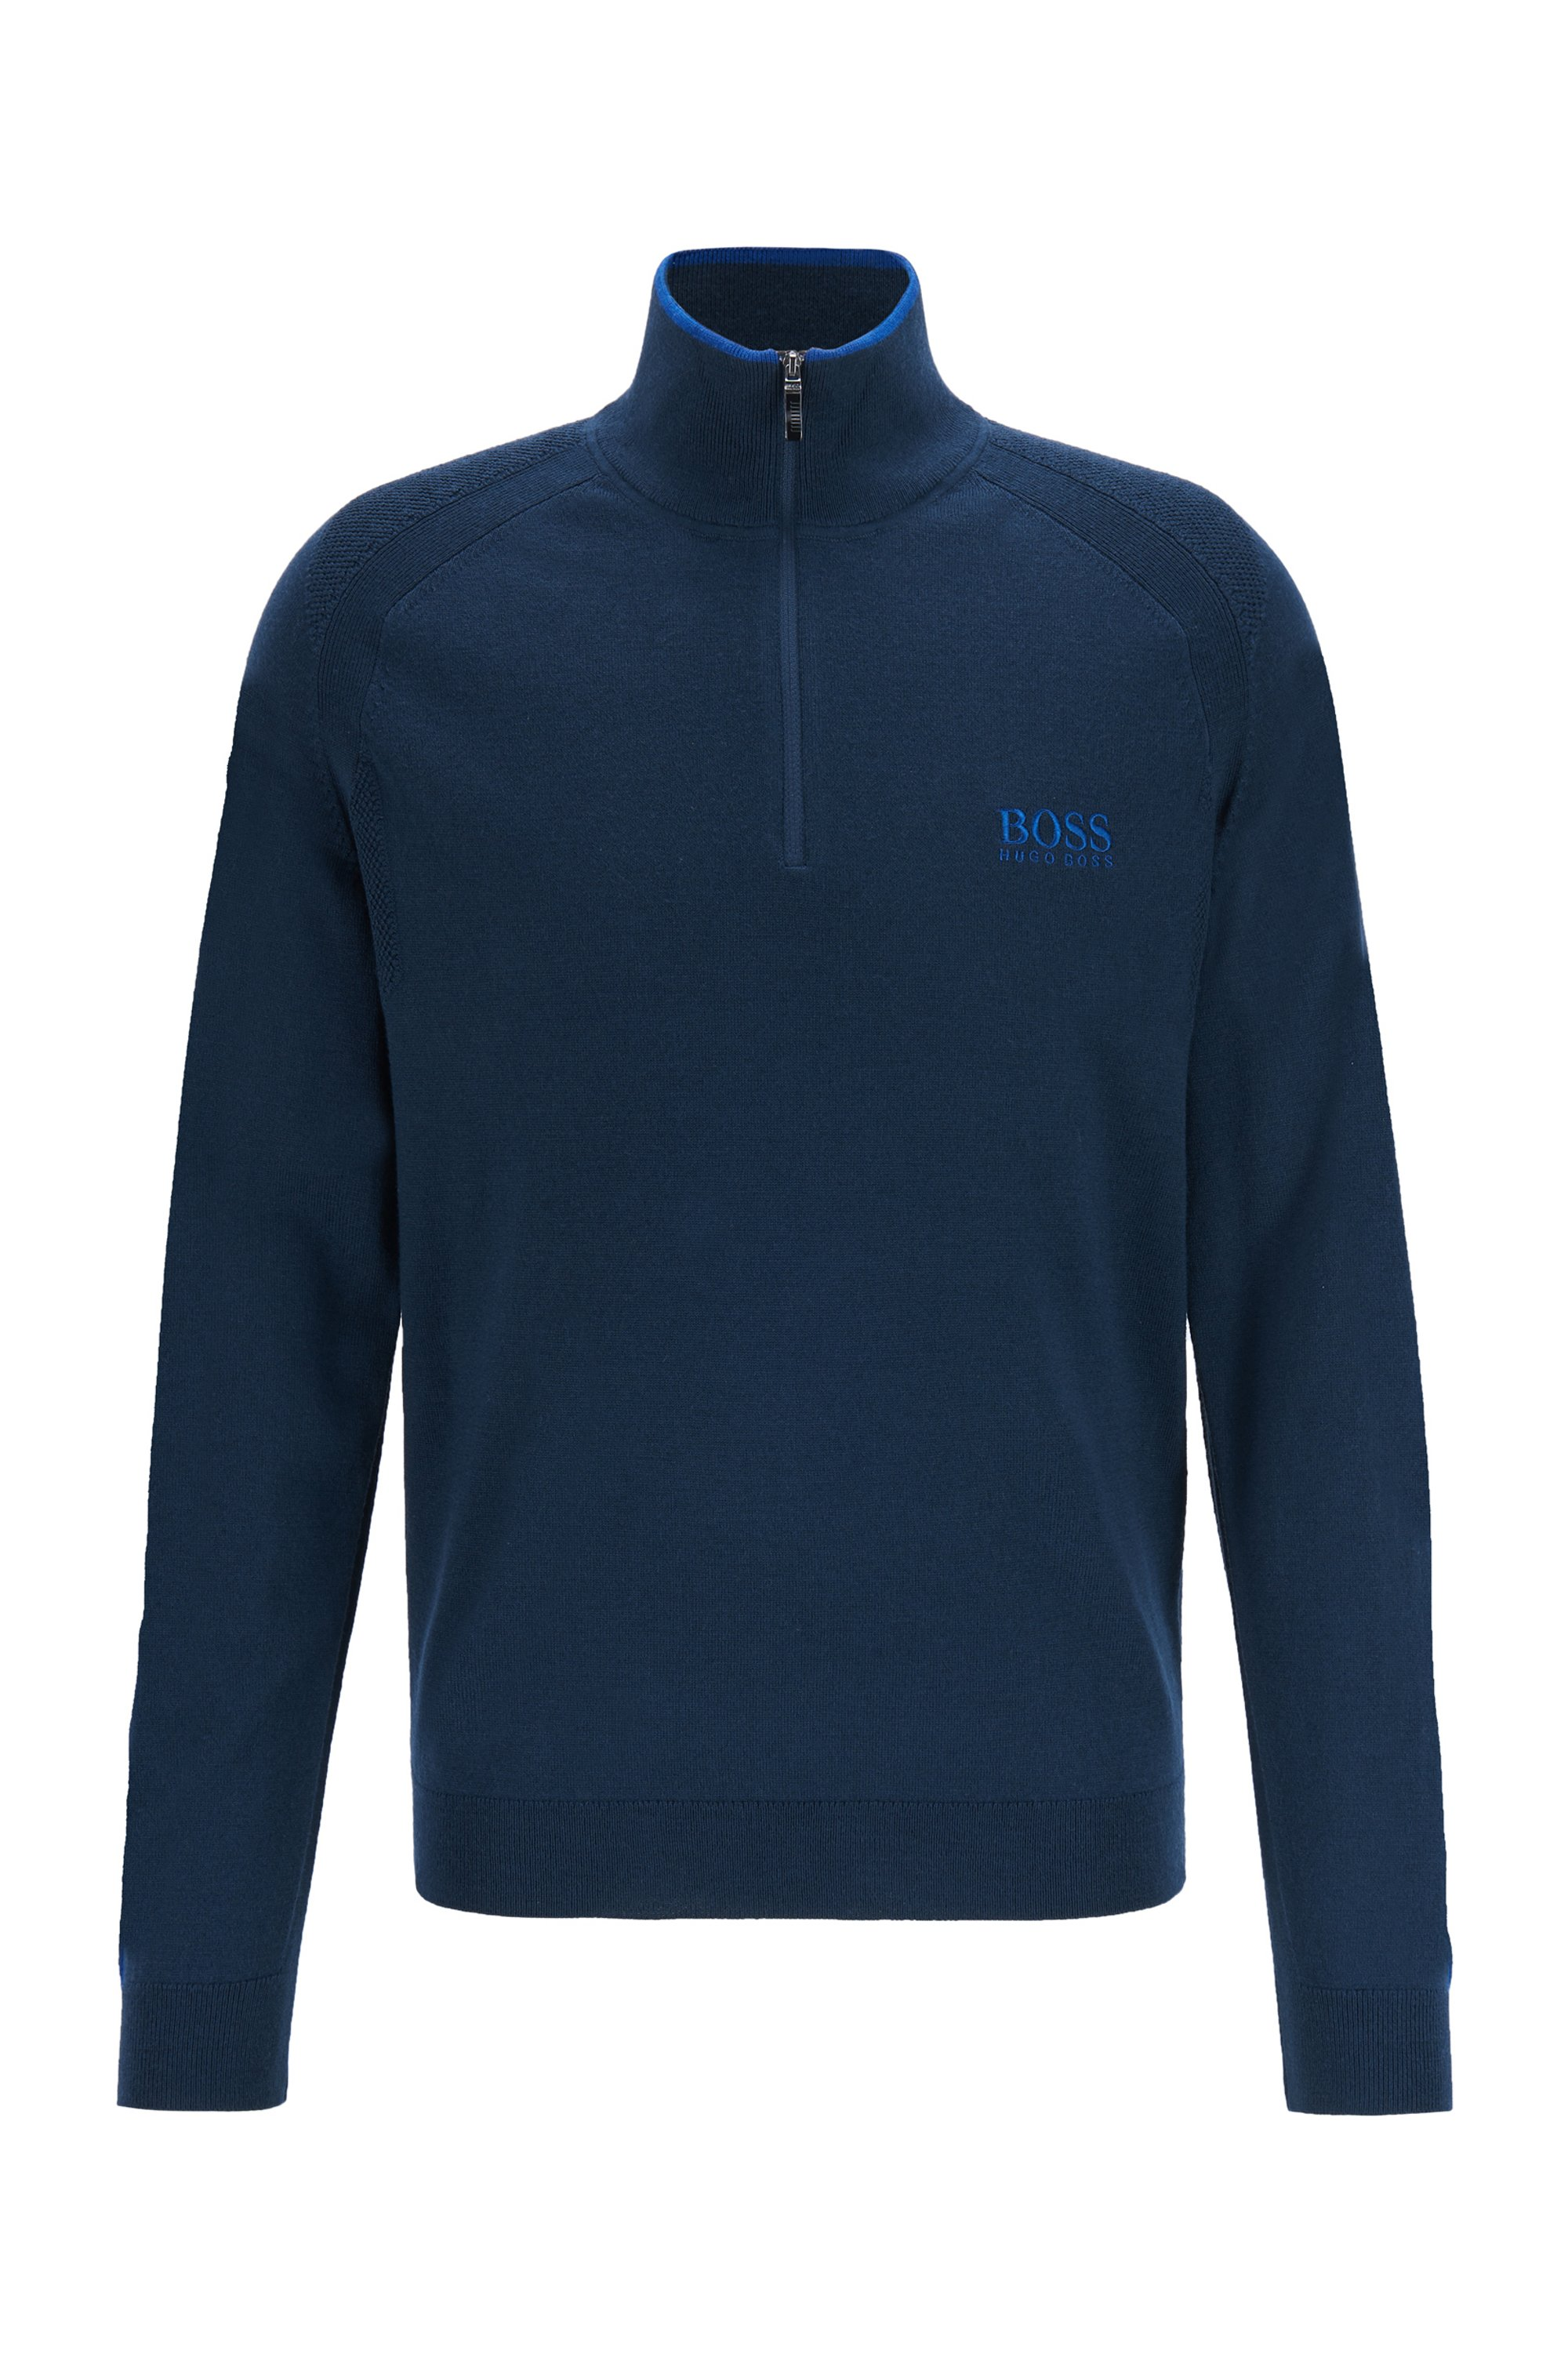 Regular-fit zip-neck sweater with logo embroidery, Dark Blue